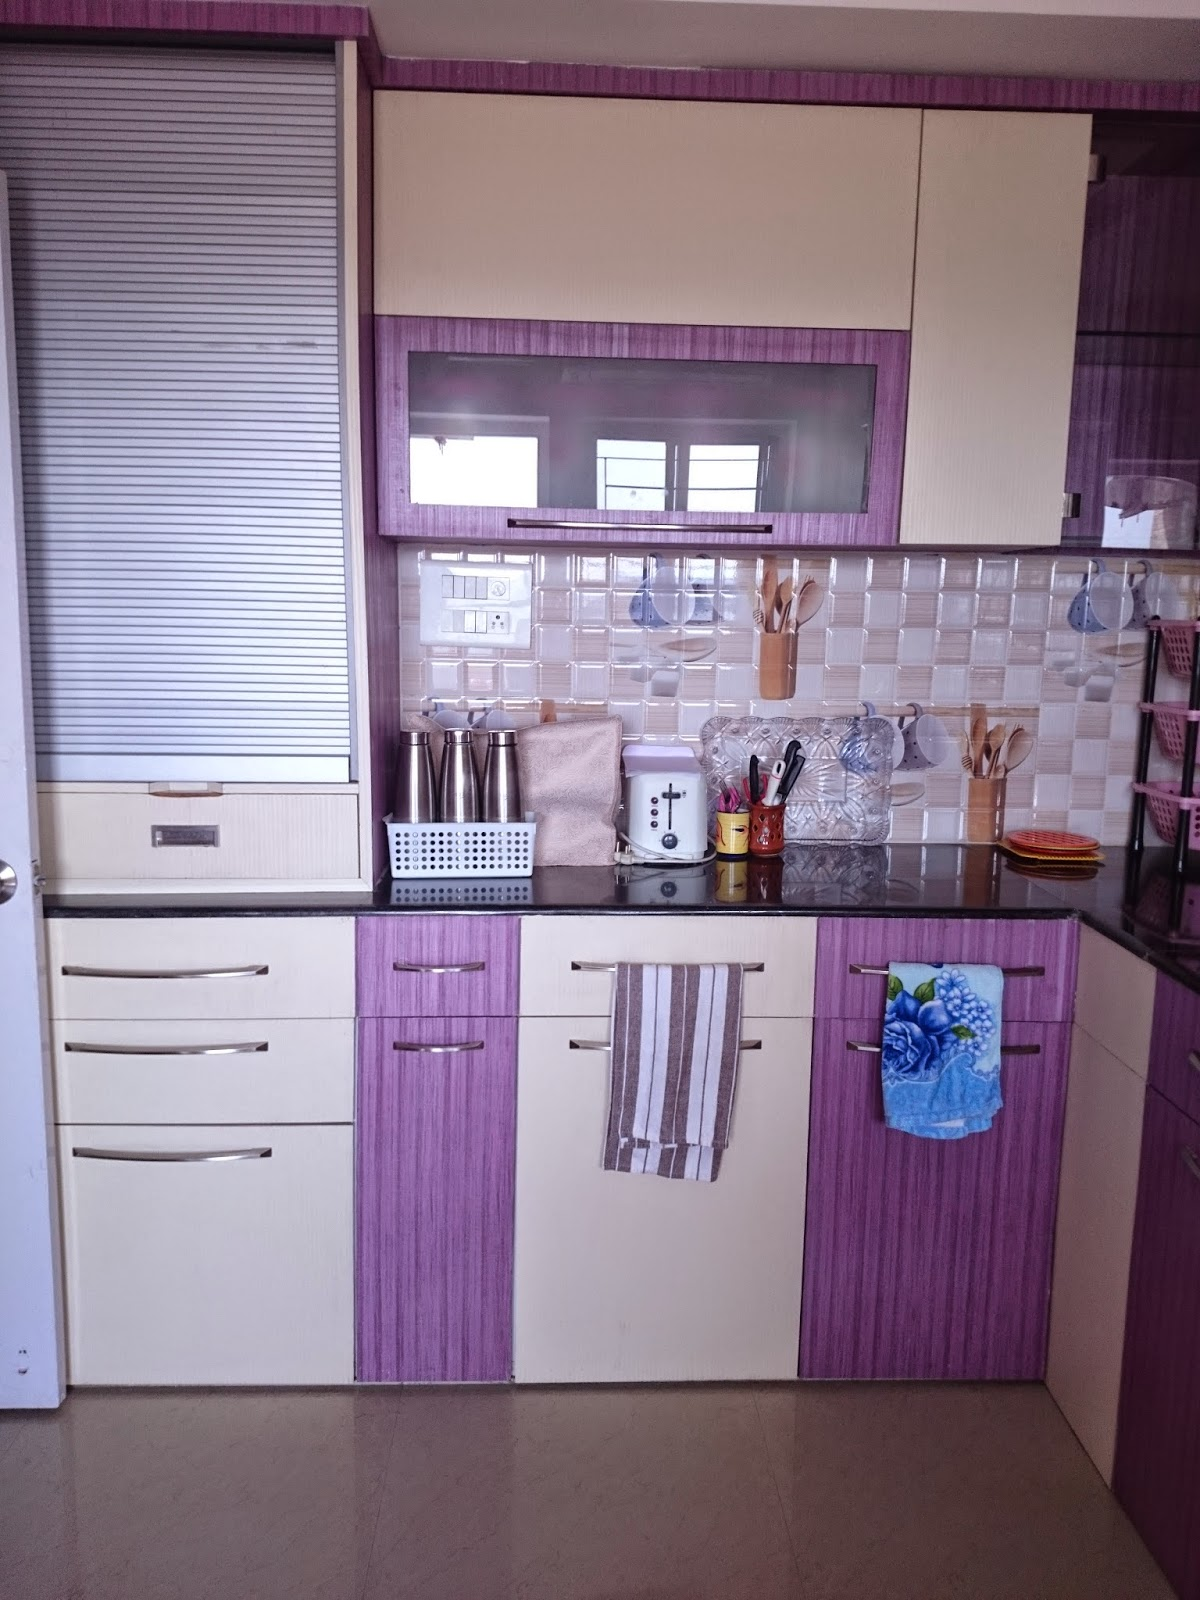 Creat E Witty Unleashed Home Sweet Home Part 3